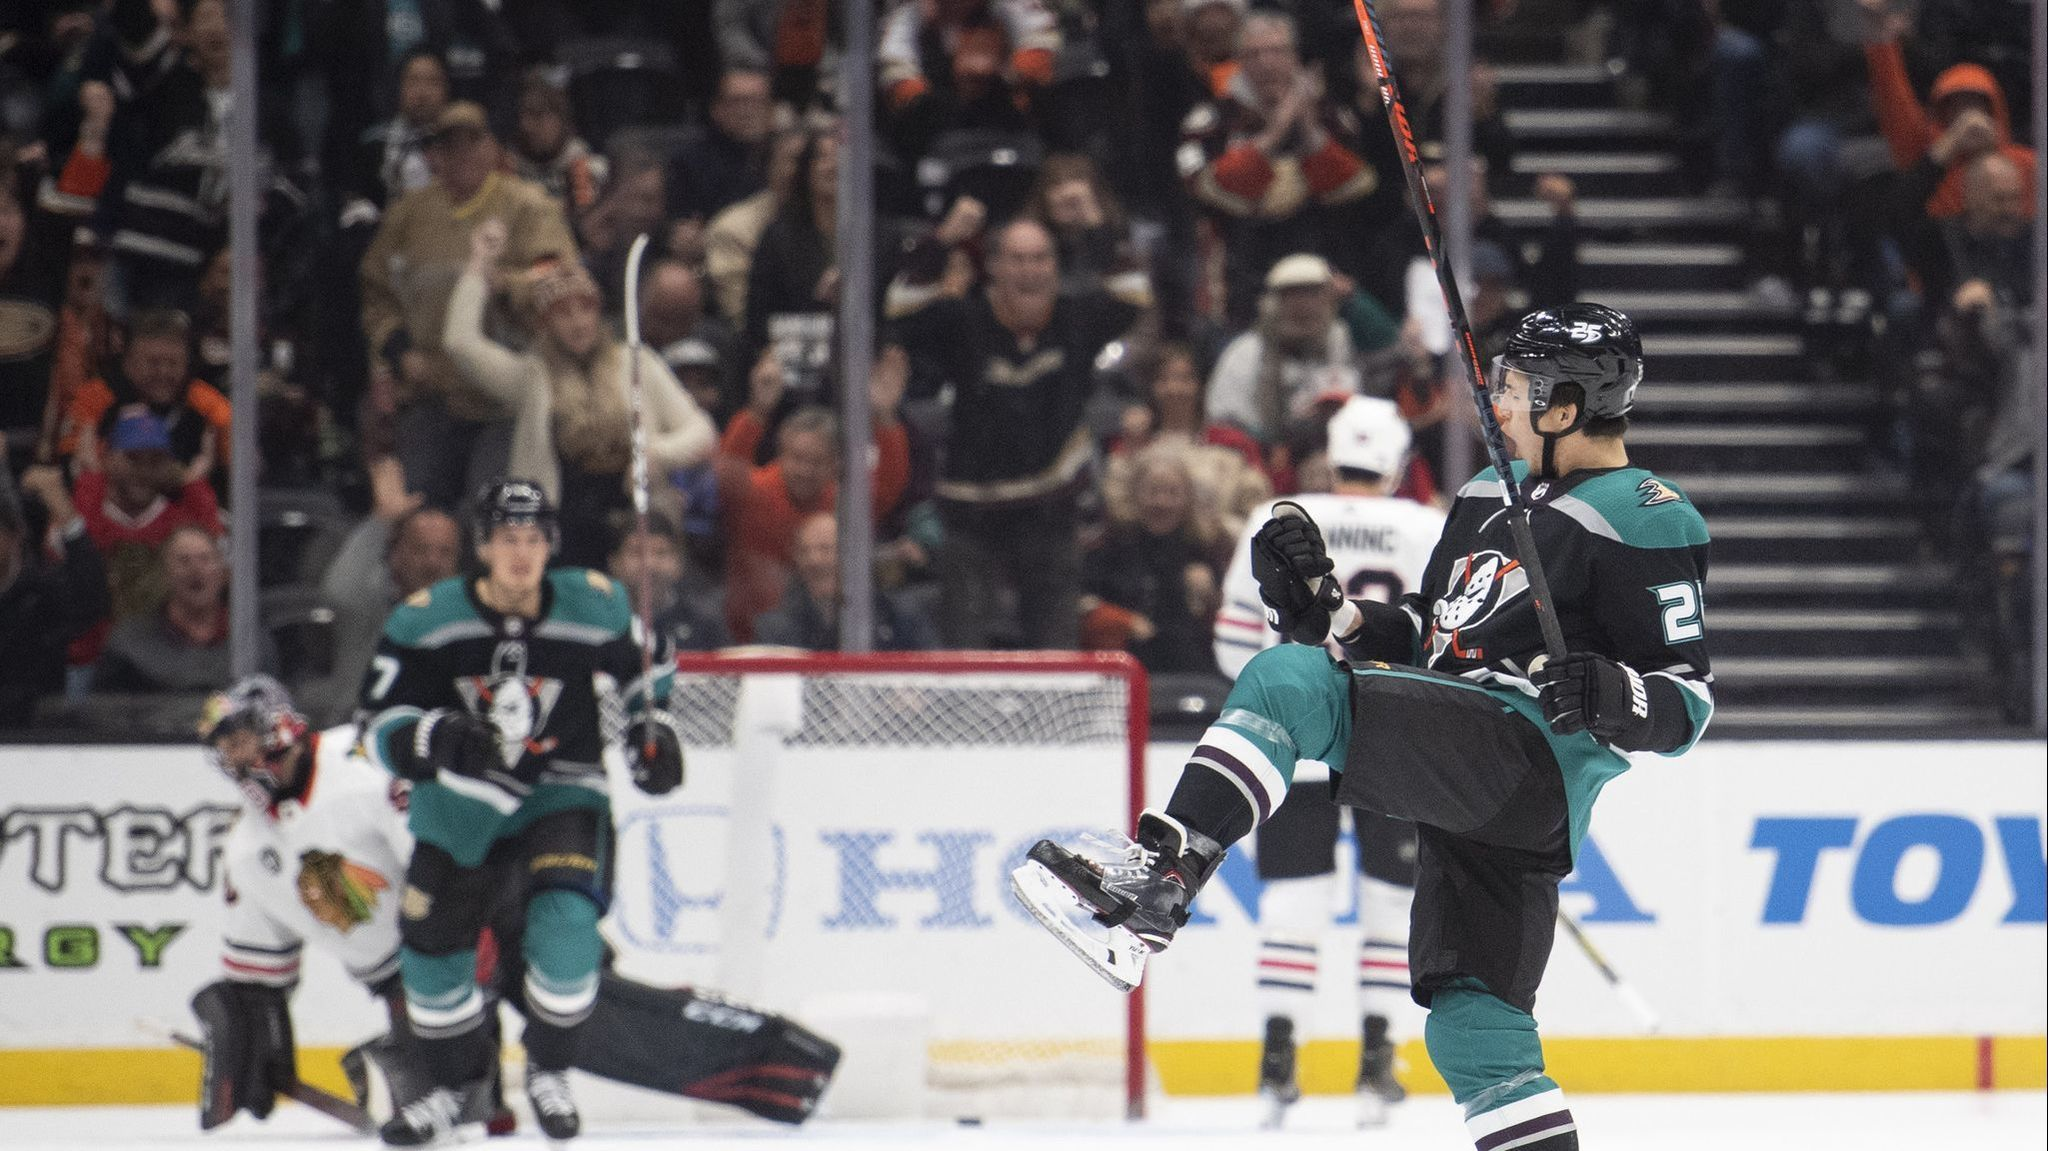 Ducks' offense shows signs of life in victory over Blackhawks for their fifth consecutive victory